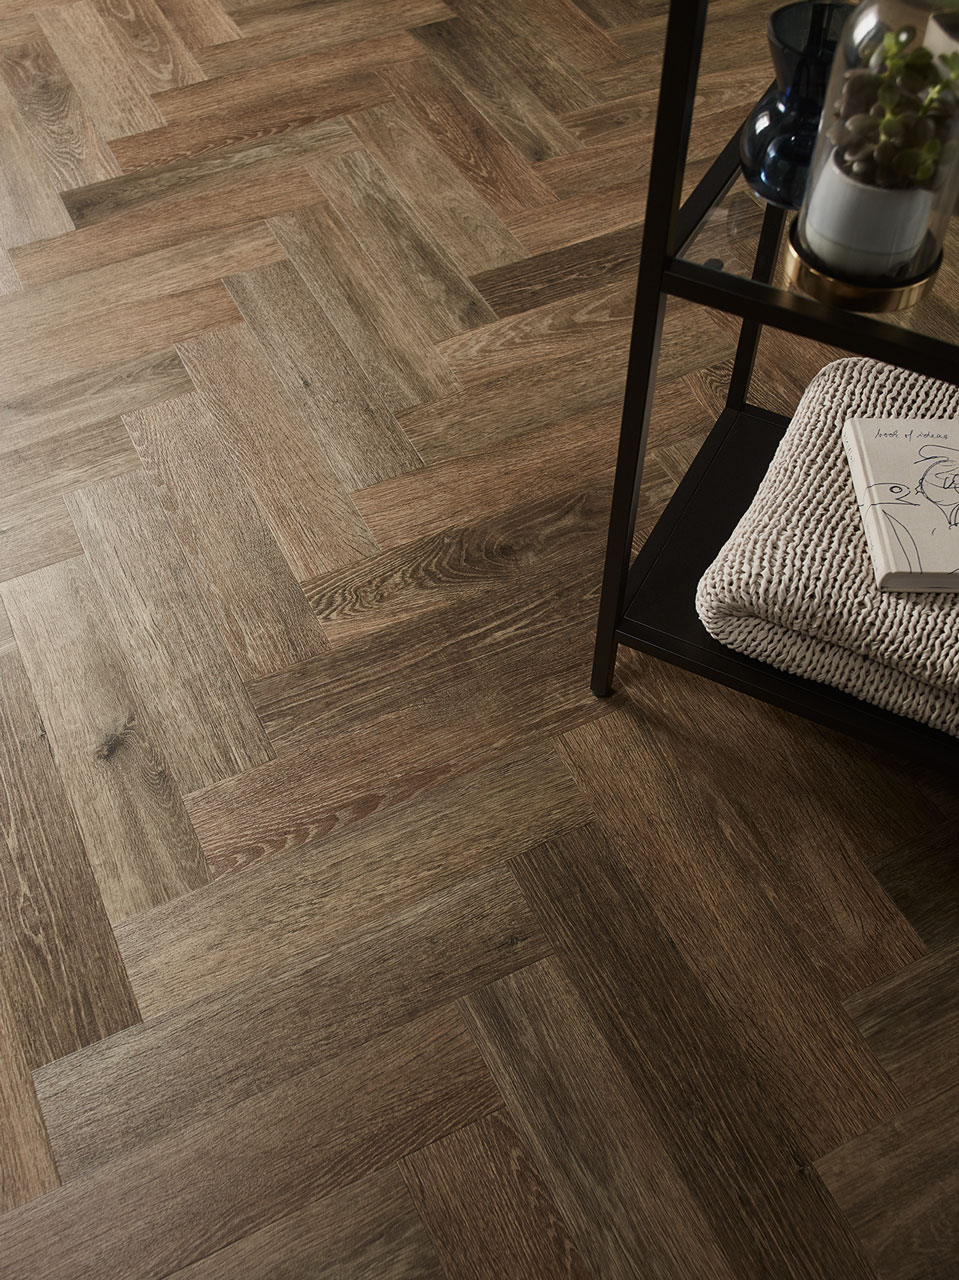 Amtico Spacia Noble Oak in parquet laying pattern